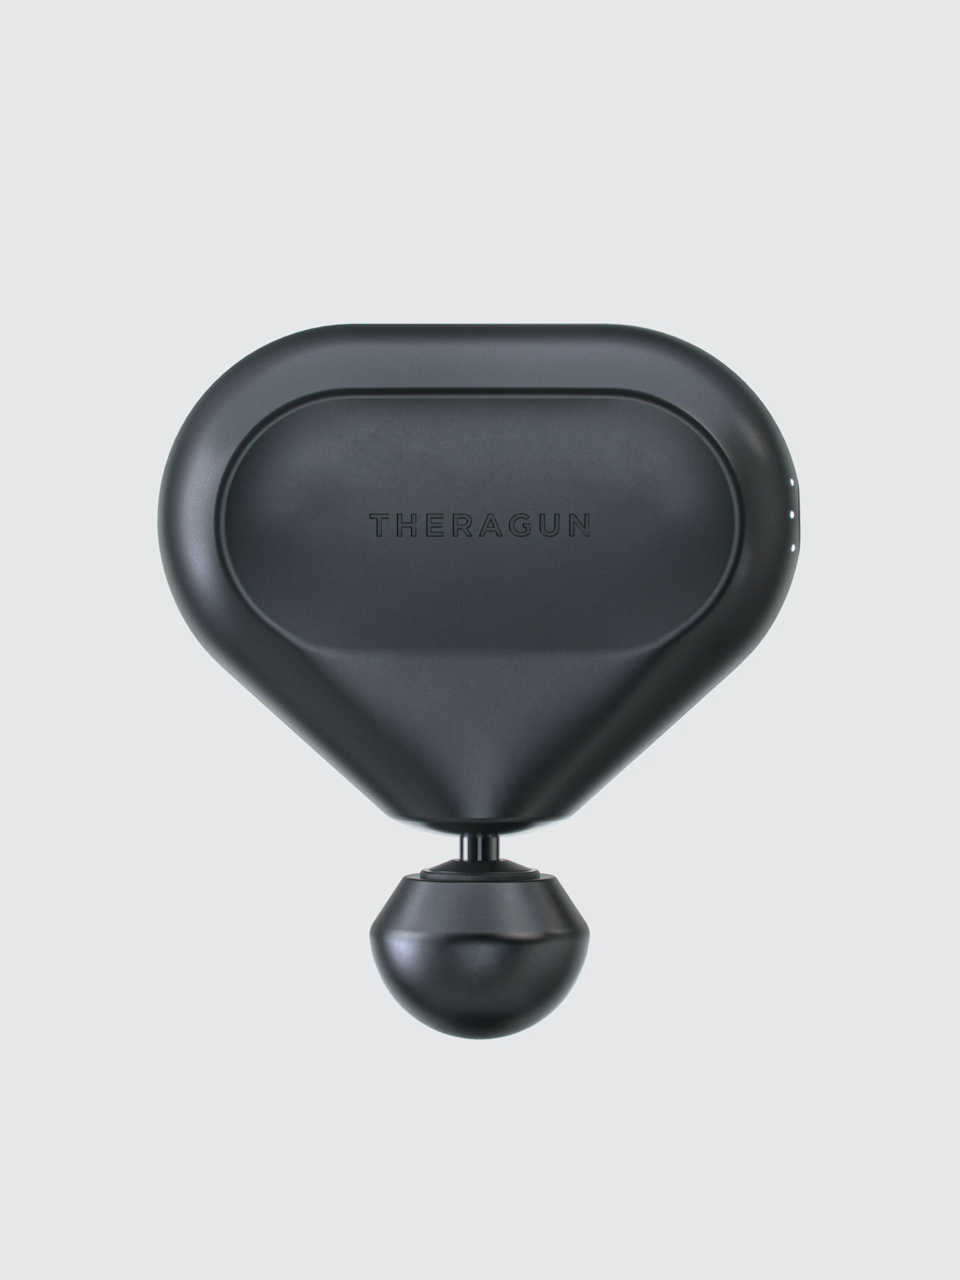 """So he's not enough of a hotshot in your life for you to go all out with a full-size Theragun. Lucky for him there's a more affordable and compact option that provides the same functionality. <br><br><strong>Theragun</strong> Theragun Mini, $, available at <a href=""""https://go.skimresources.com/?id=30283X879131&url=https%3A%2F%2Fwww.verishop.com%2Ftheragun%2Fweights%2Ftheragun-mini%2Fp4432748445719%3Fvariant_id%3D31465951363095"""" rel=""""nofollow noopener"""" target=""""_blank"""" data-ylk=""""slk:Verishop"""" class=""""link rapid-noclick-resp"""">Verishop</a>"""